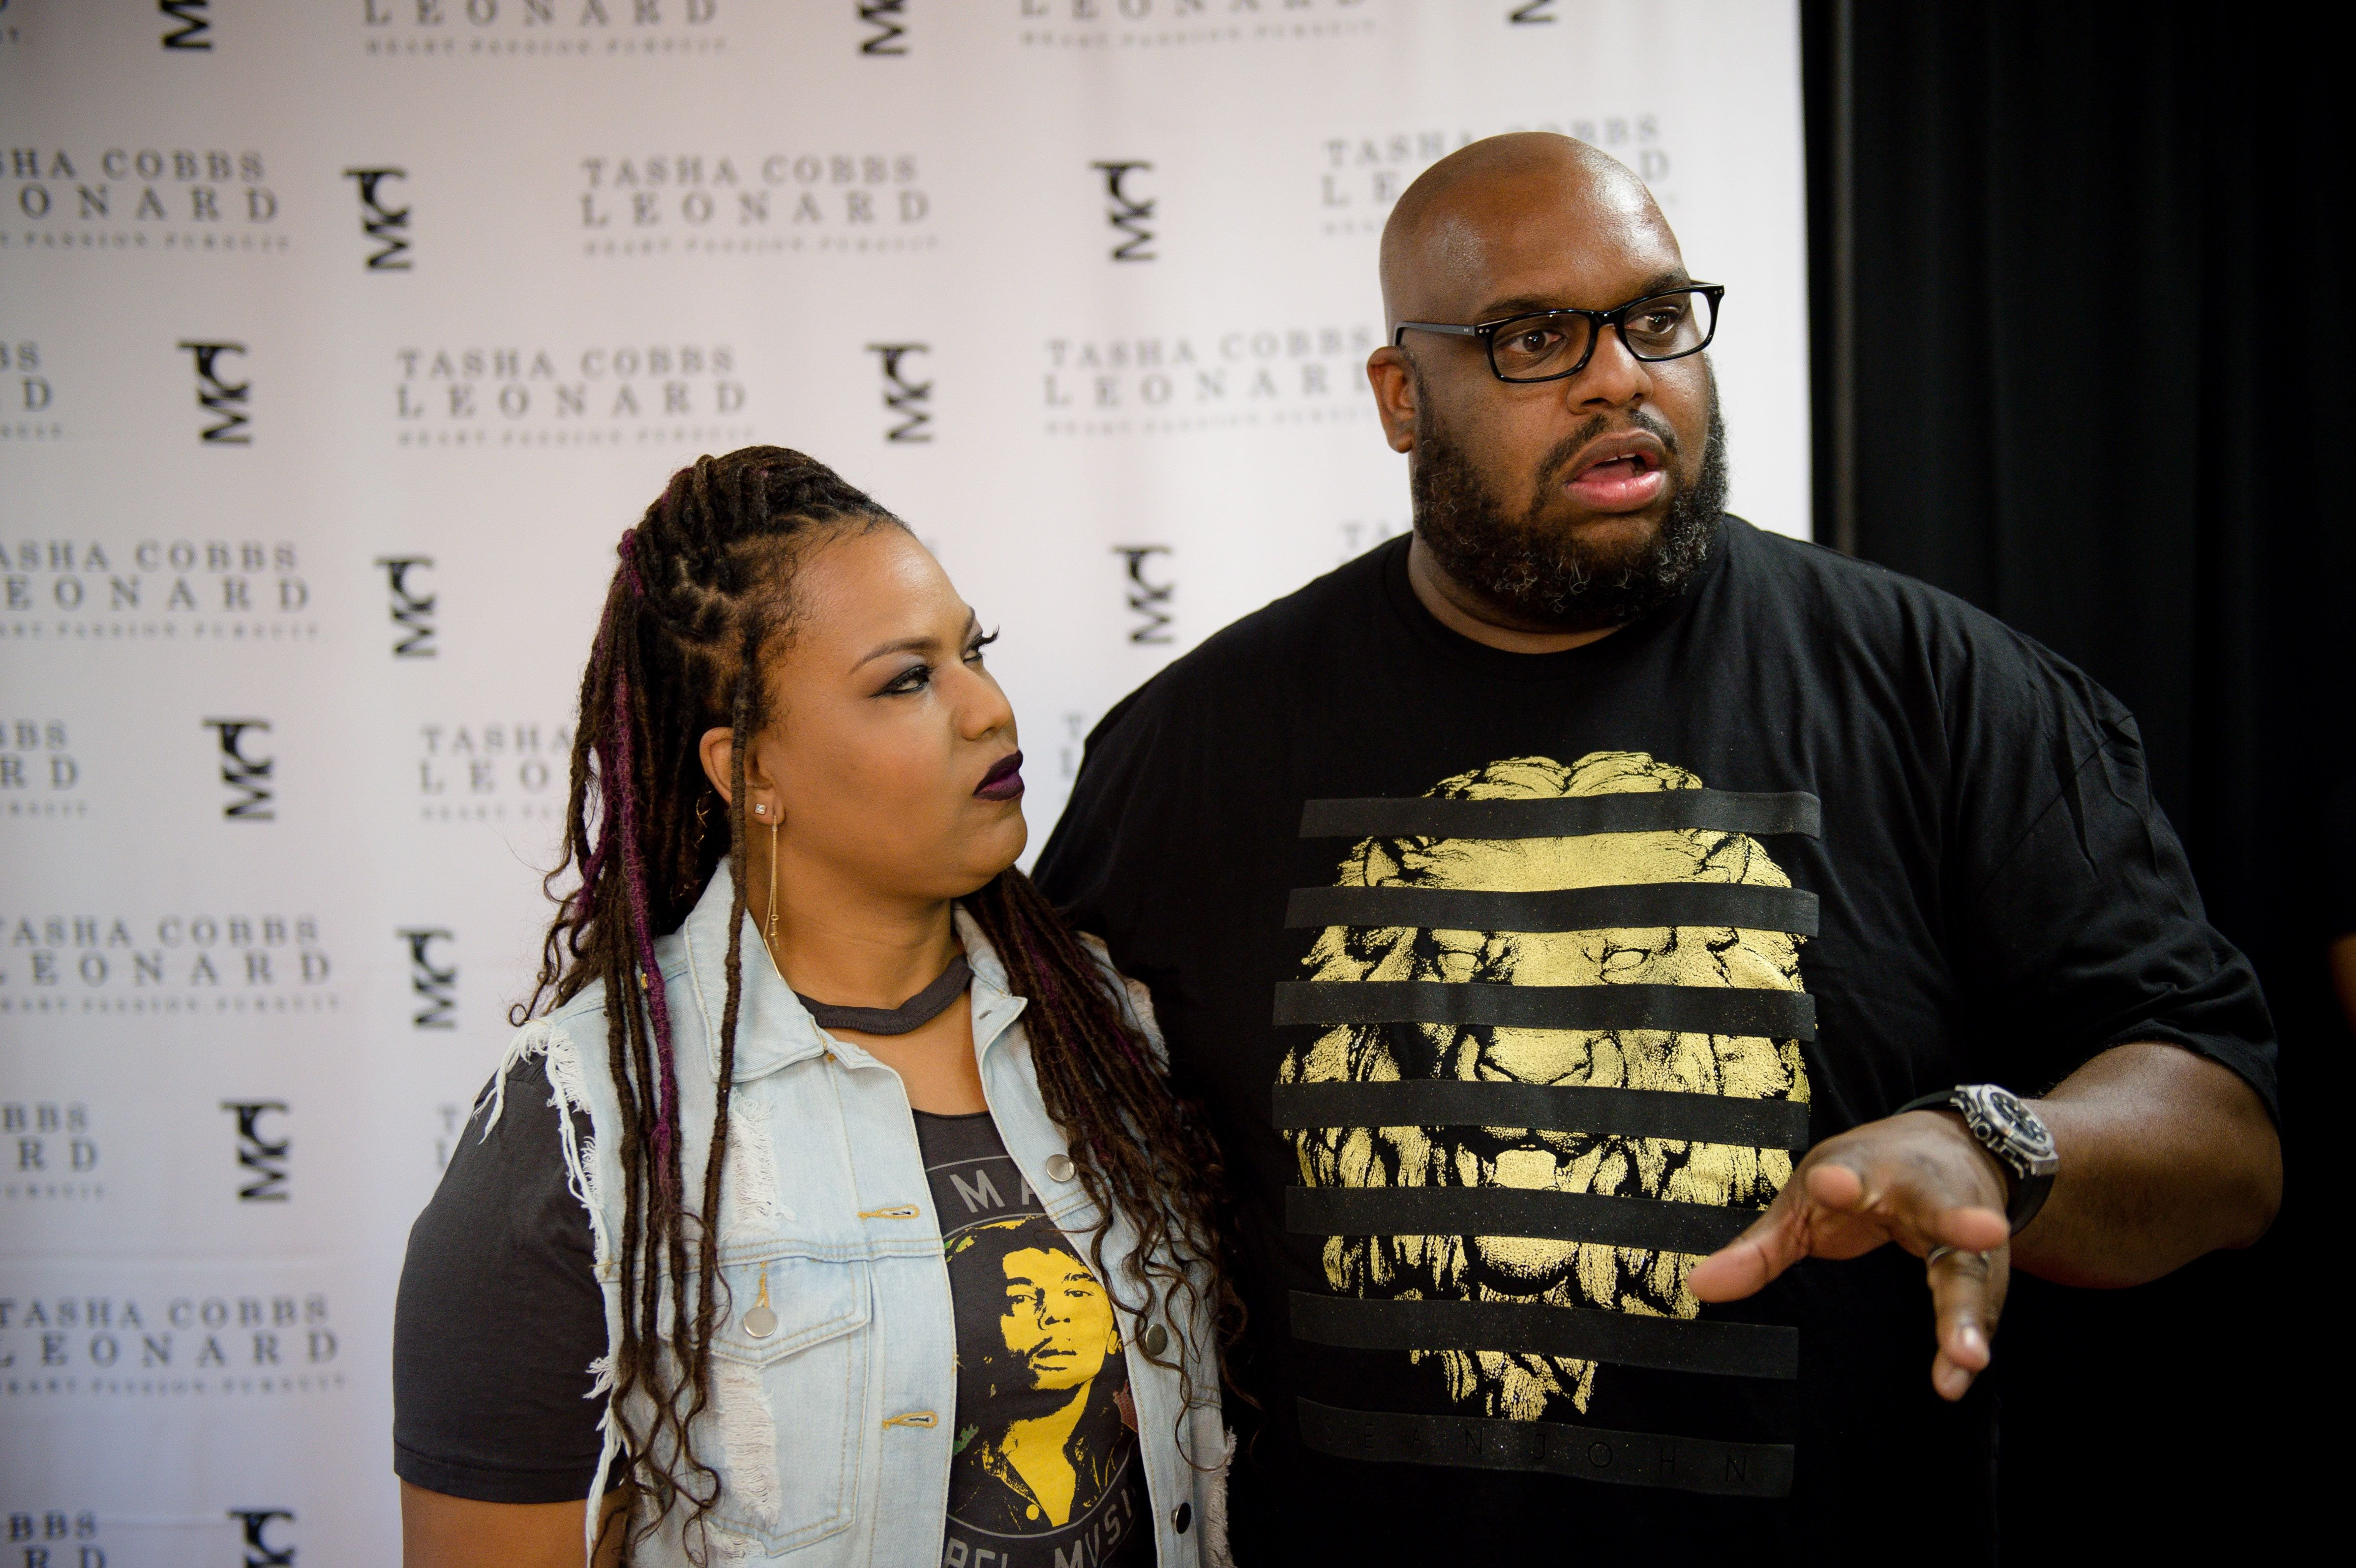 """Aventer Gray and Pastor John Gray during Tasha Cobbs Leonard's """"Heart. Passion. Pursuit."""" album release concert at The dReam Center Church of Atlanta on August 25, 2017 in Atlanta, Georgia.   Source: Getty Images"""